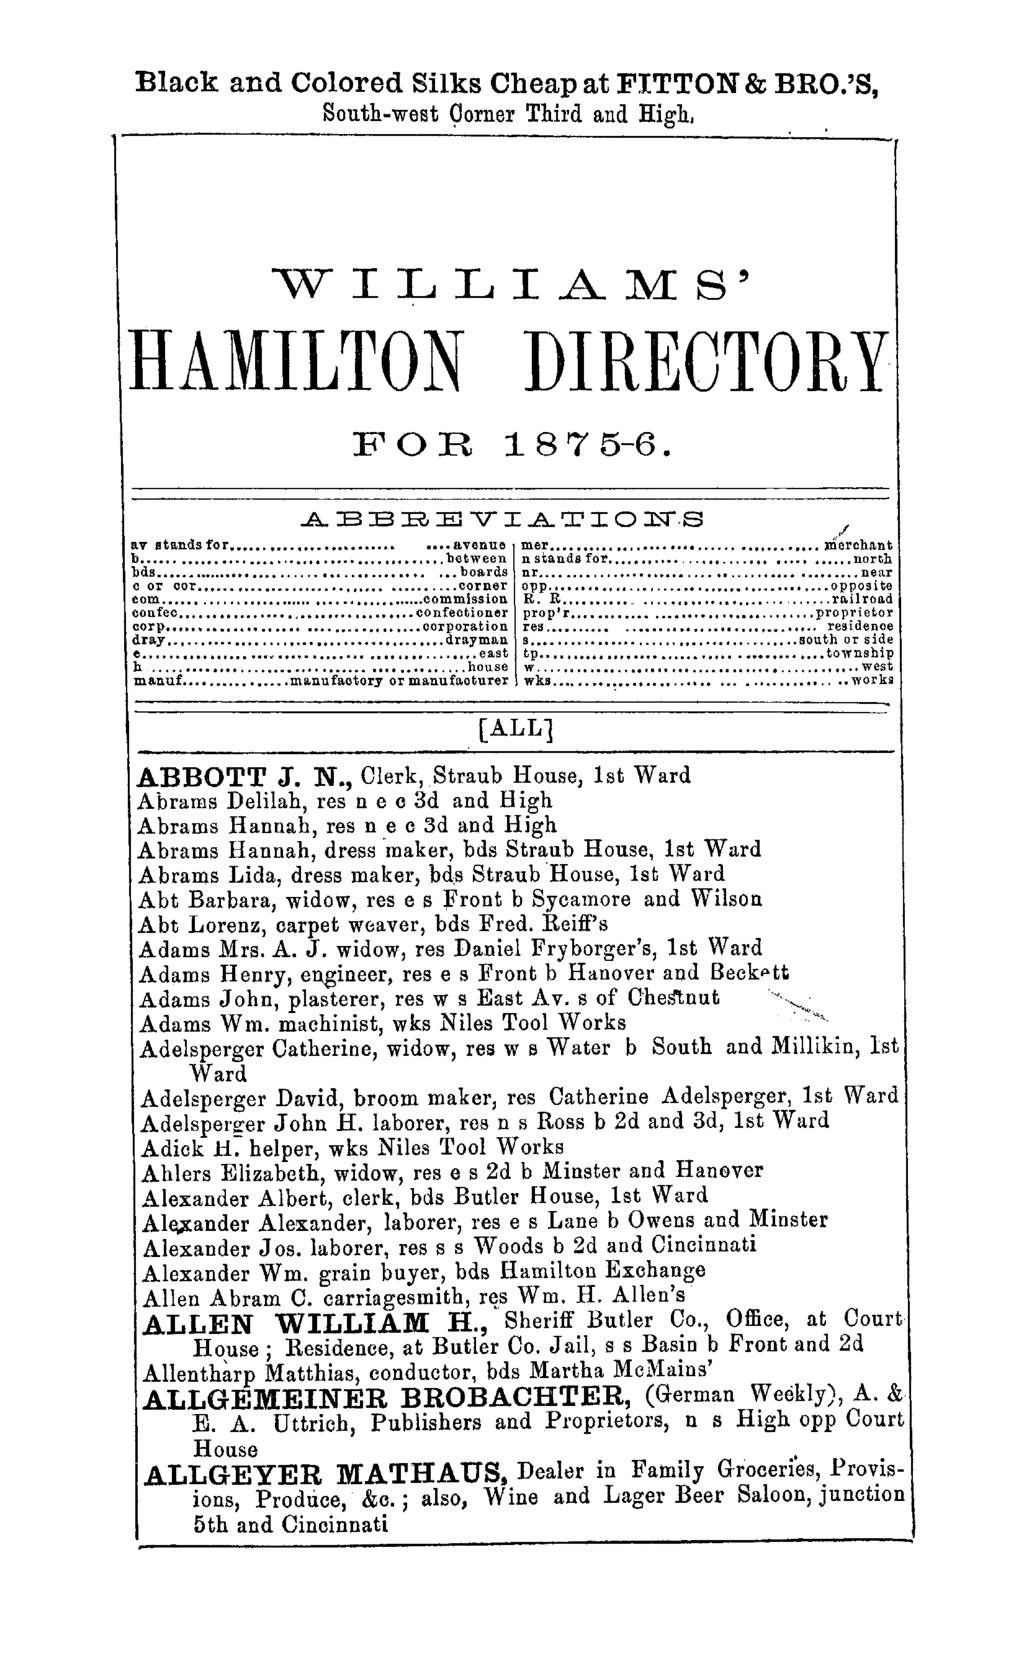 Black and Colored Silks Cheap at FITTON & BRO.'S, South-west Corner Third and High. WILLIAMS' HAMILTON DIREOTORY FOR 1875-6. A EE RE V IATIO N.S./ av stands for......... avenue mer... merchant b.